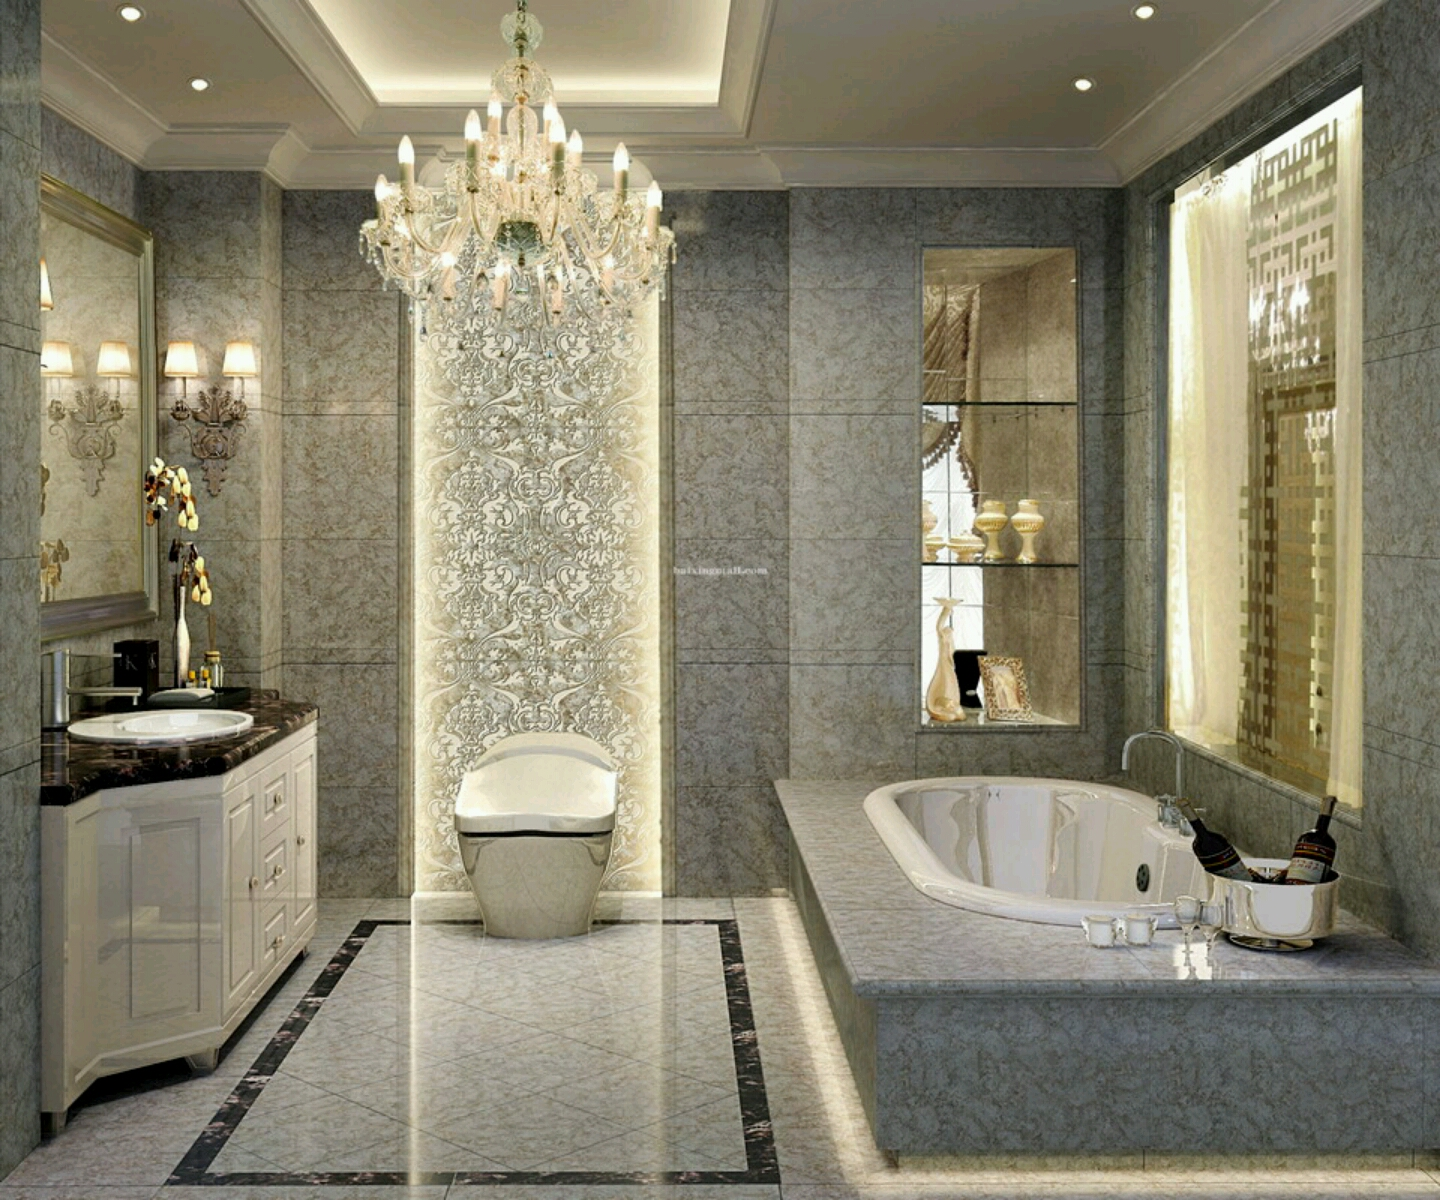 Luxury bathrooms designs.